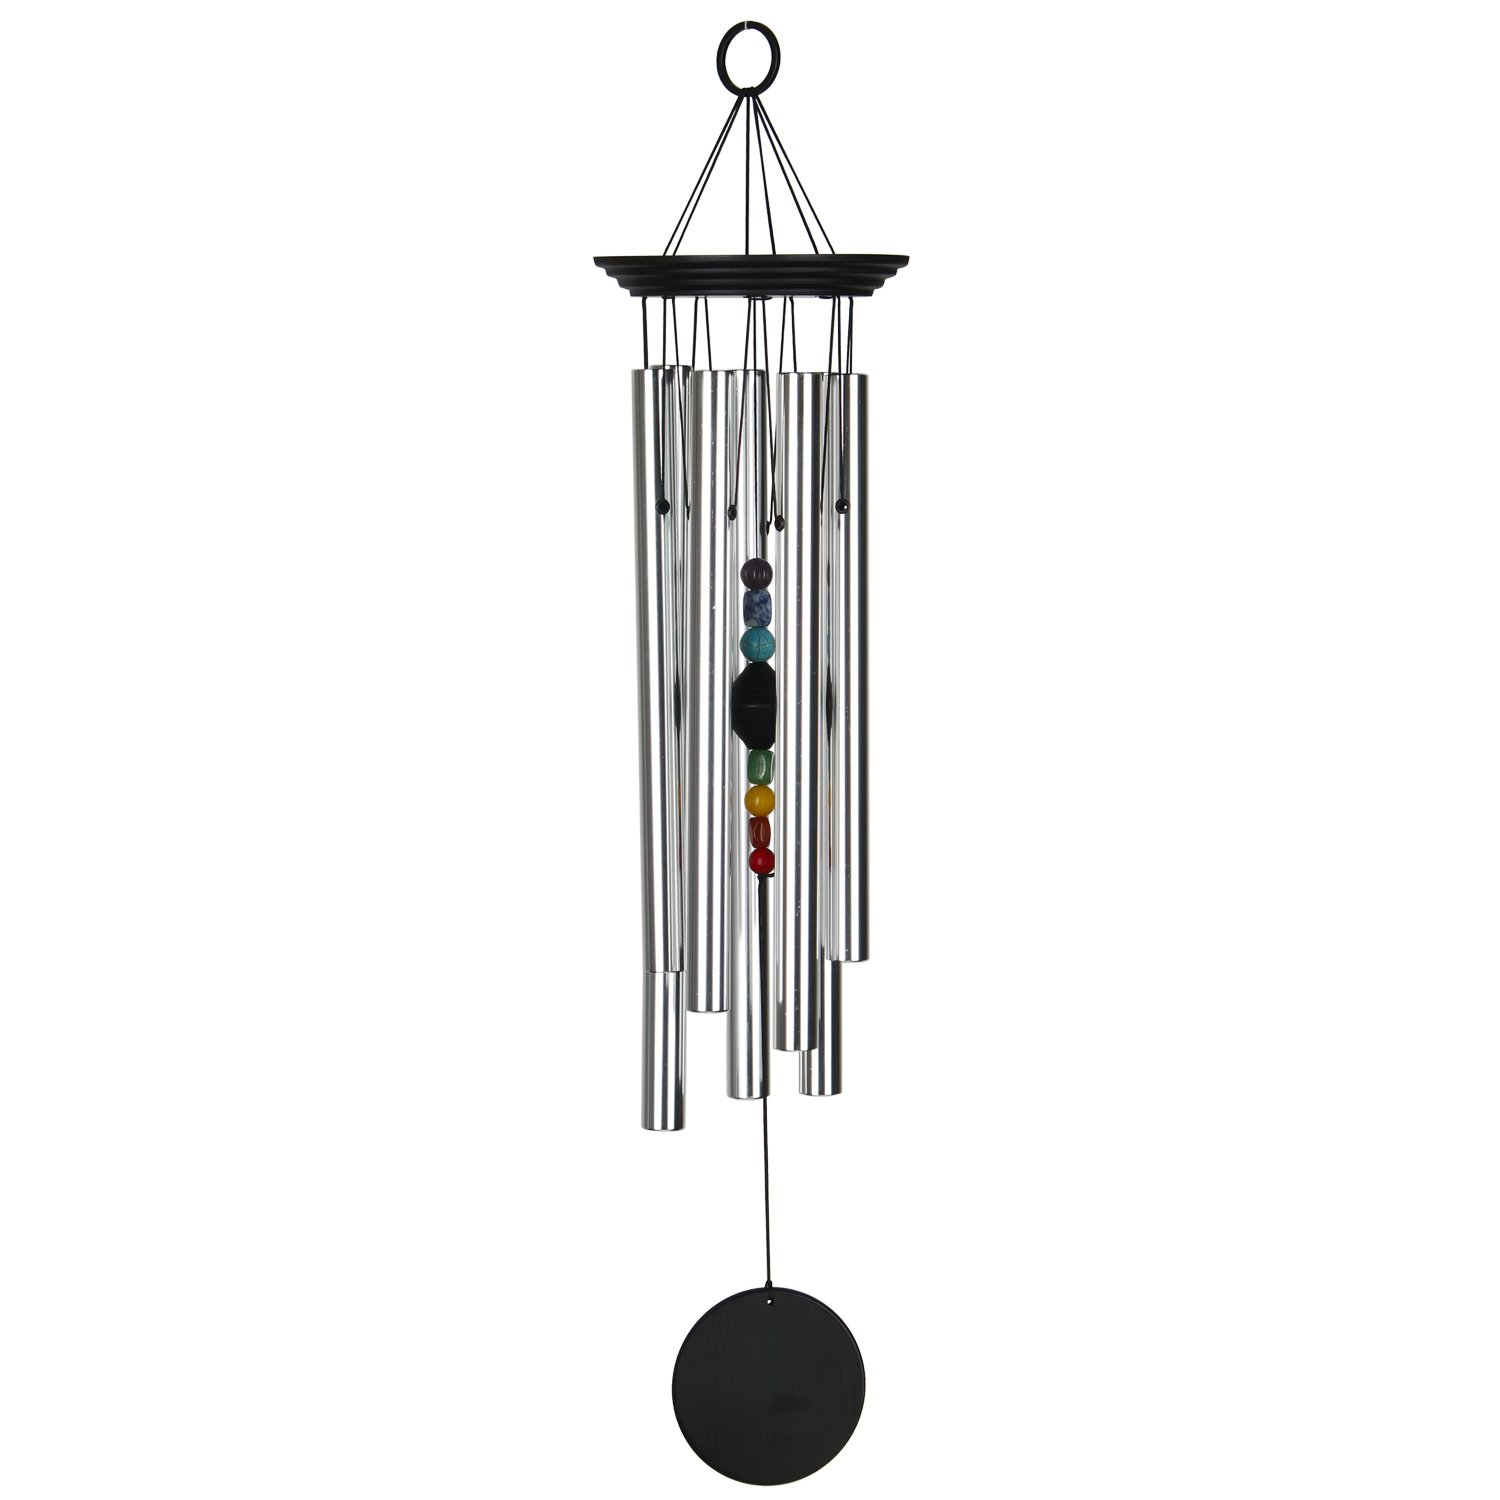 Woodstock Chimes Chakra Windchime with 7 Stones, 24.5-Inch CC7L